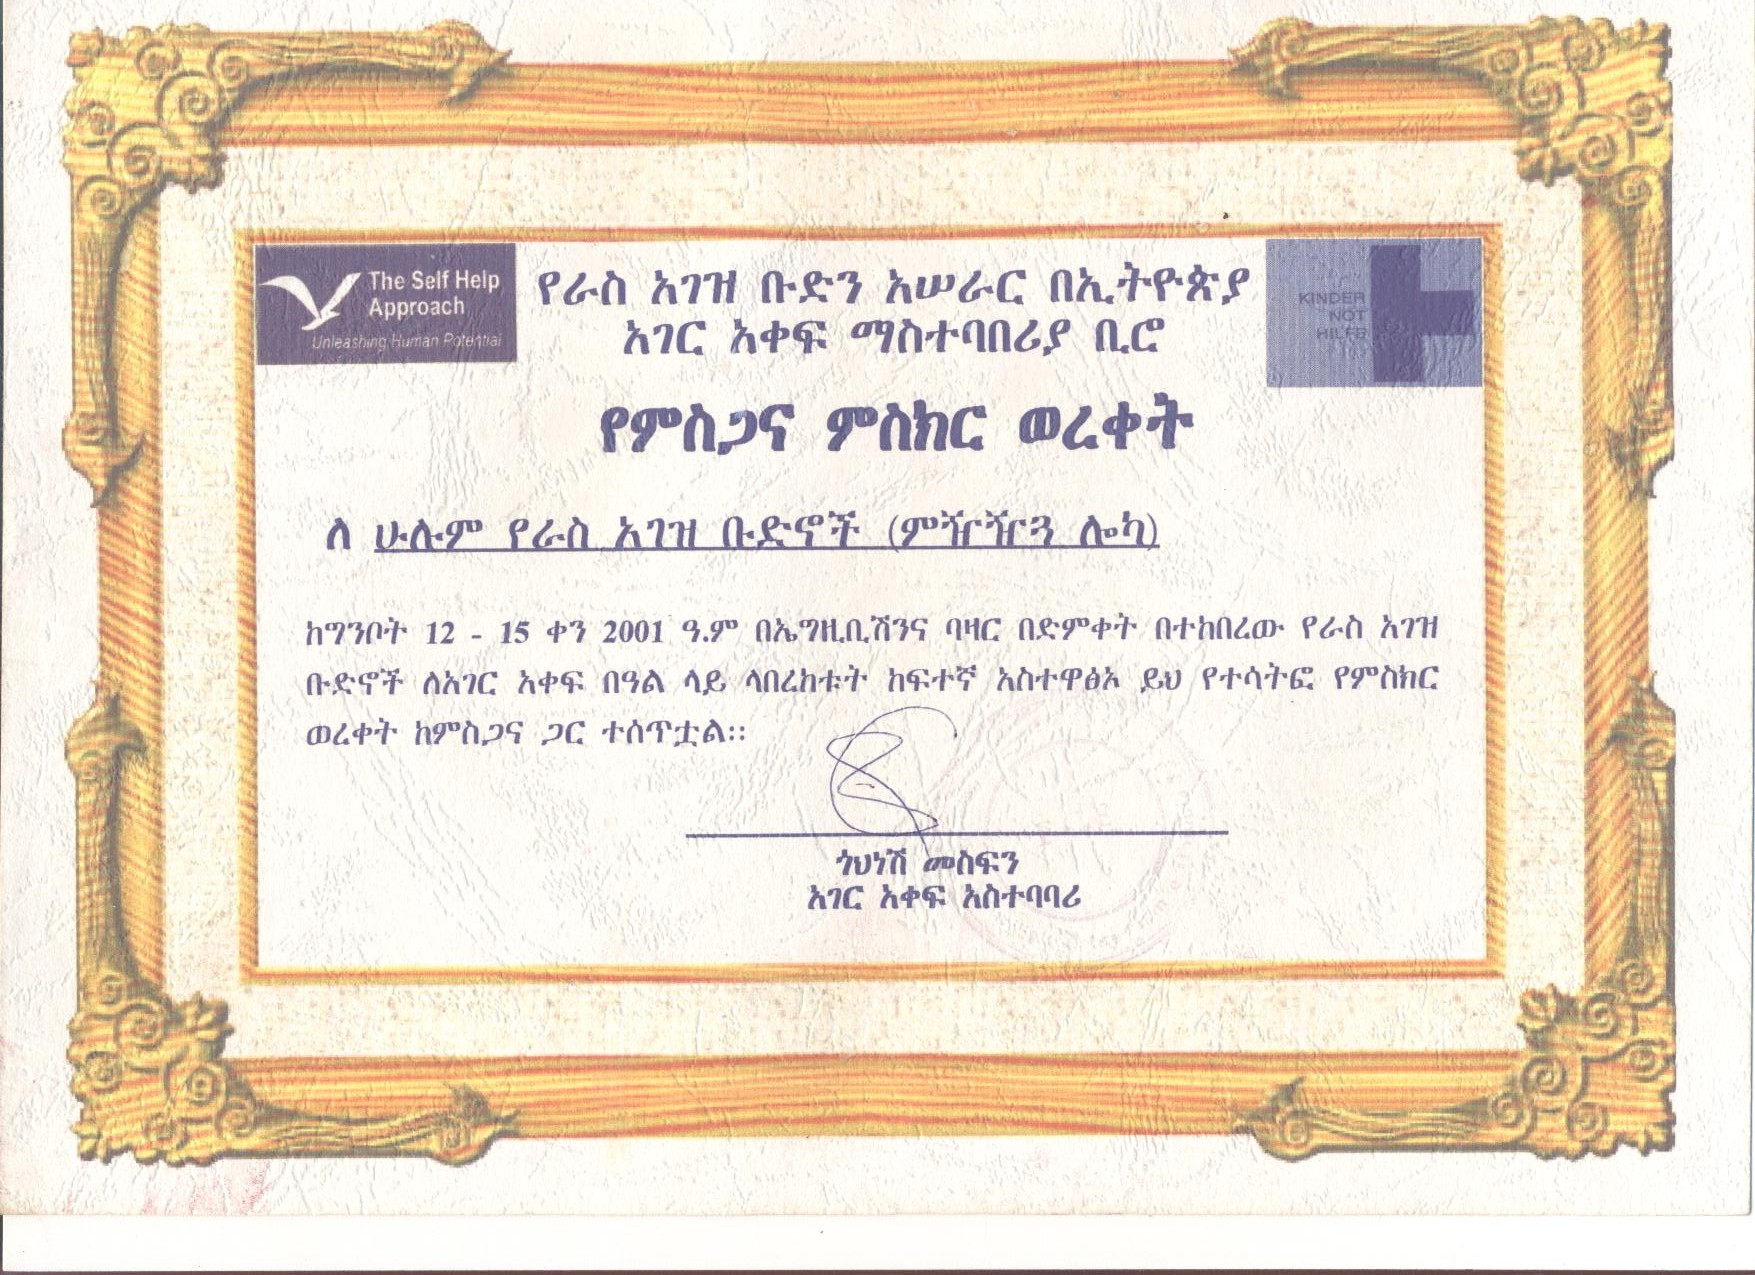 Certificate of Appreciation from the Self Help Approach